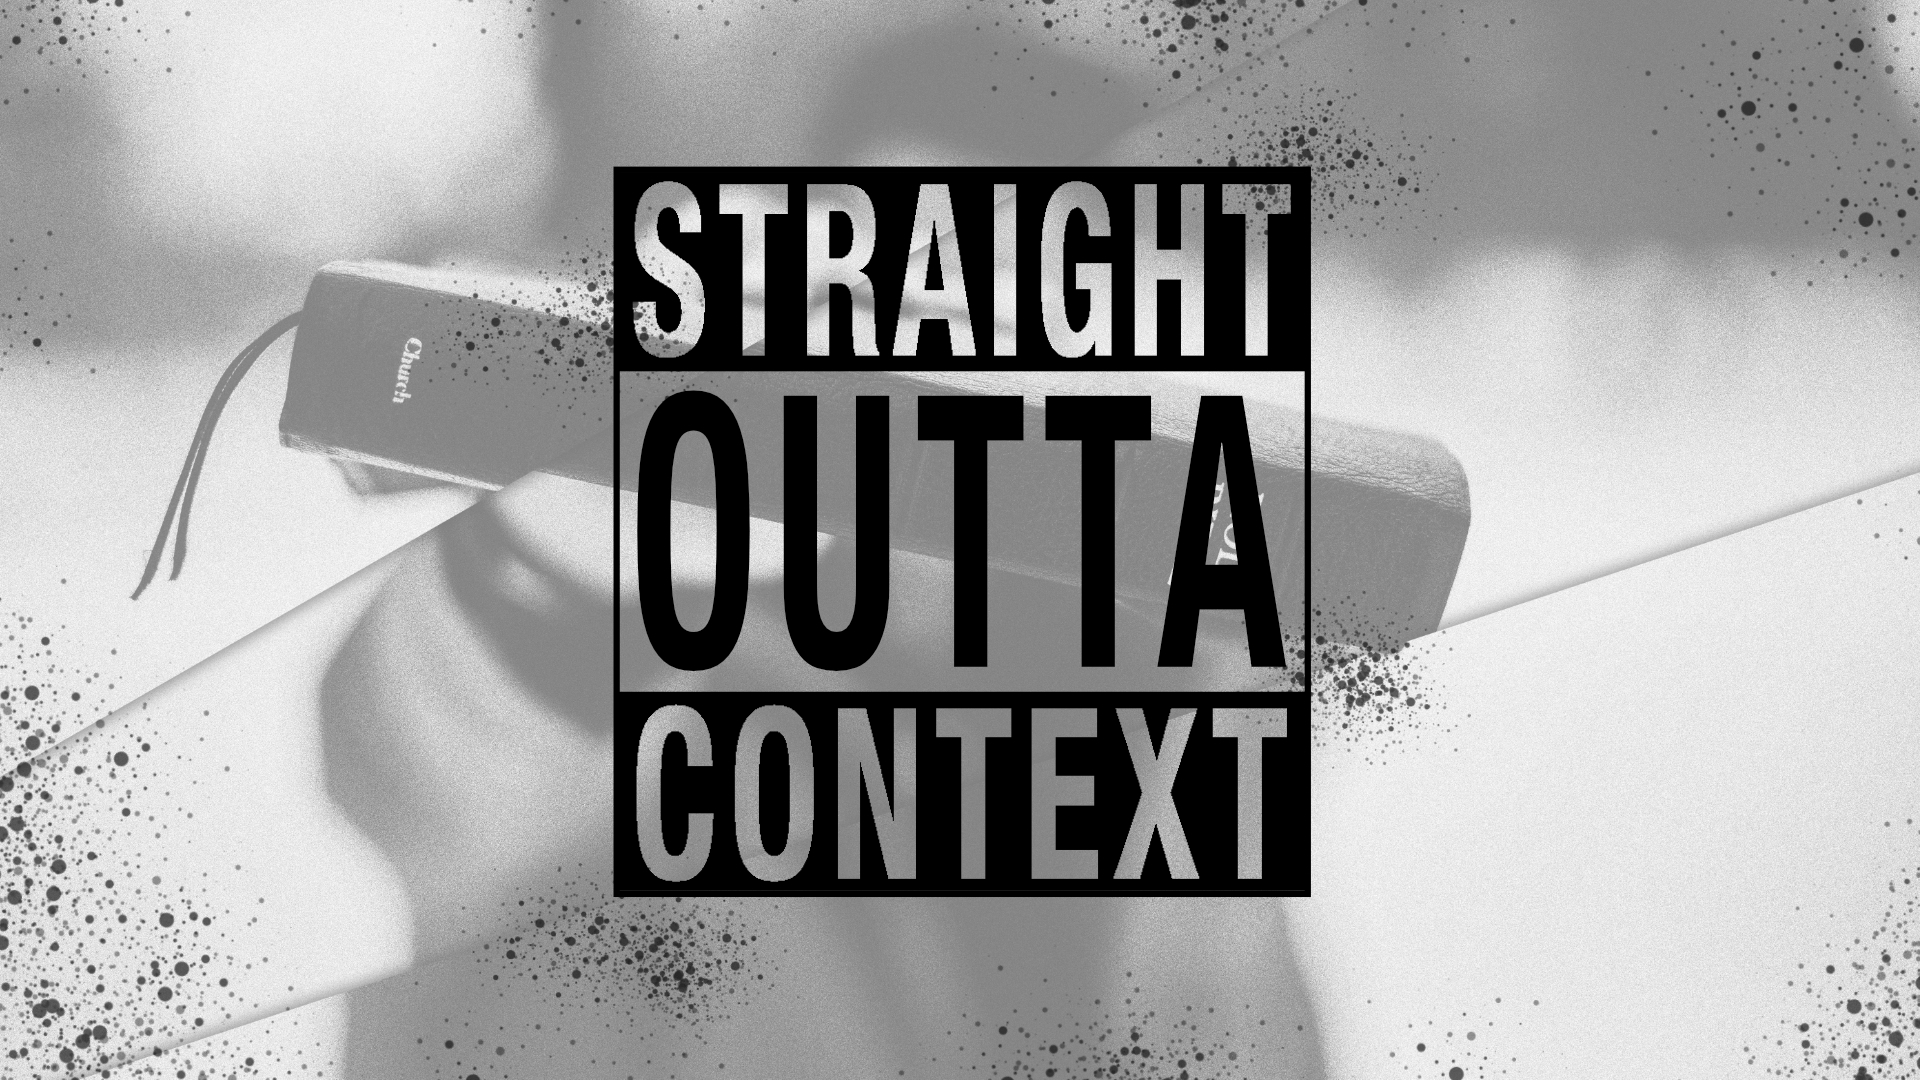 Straight Outta Context: When Revival Gets Real